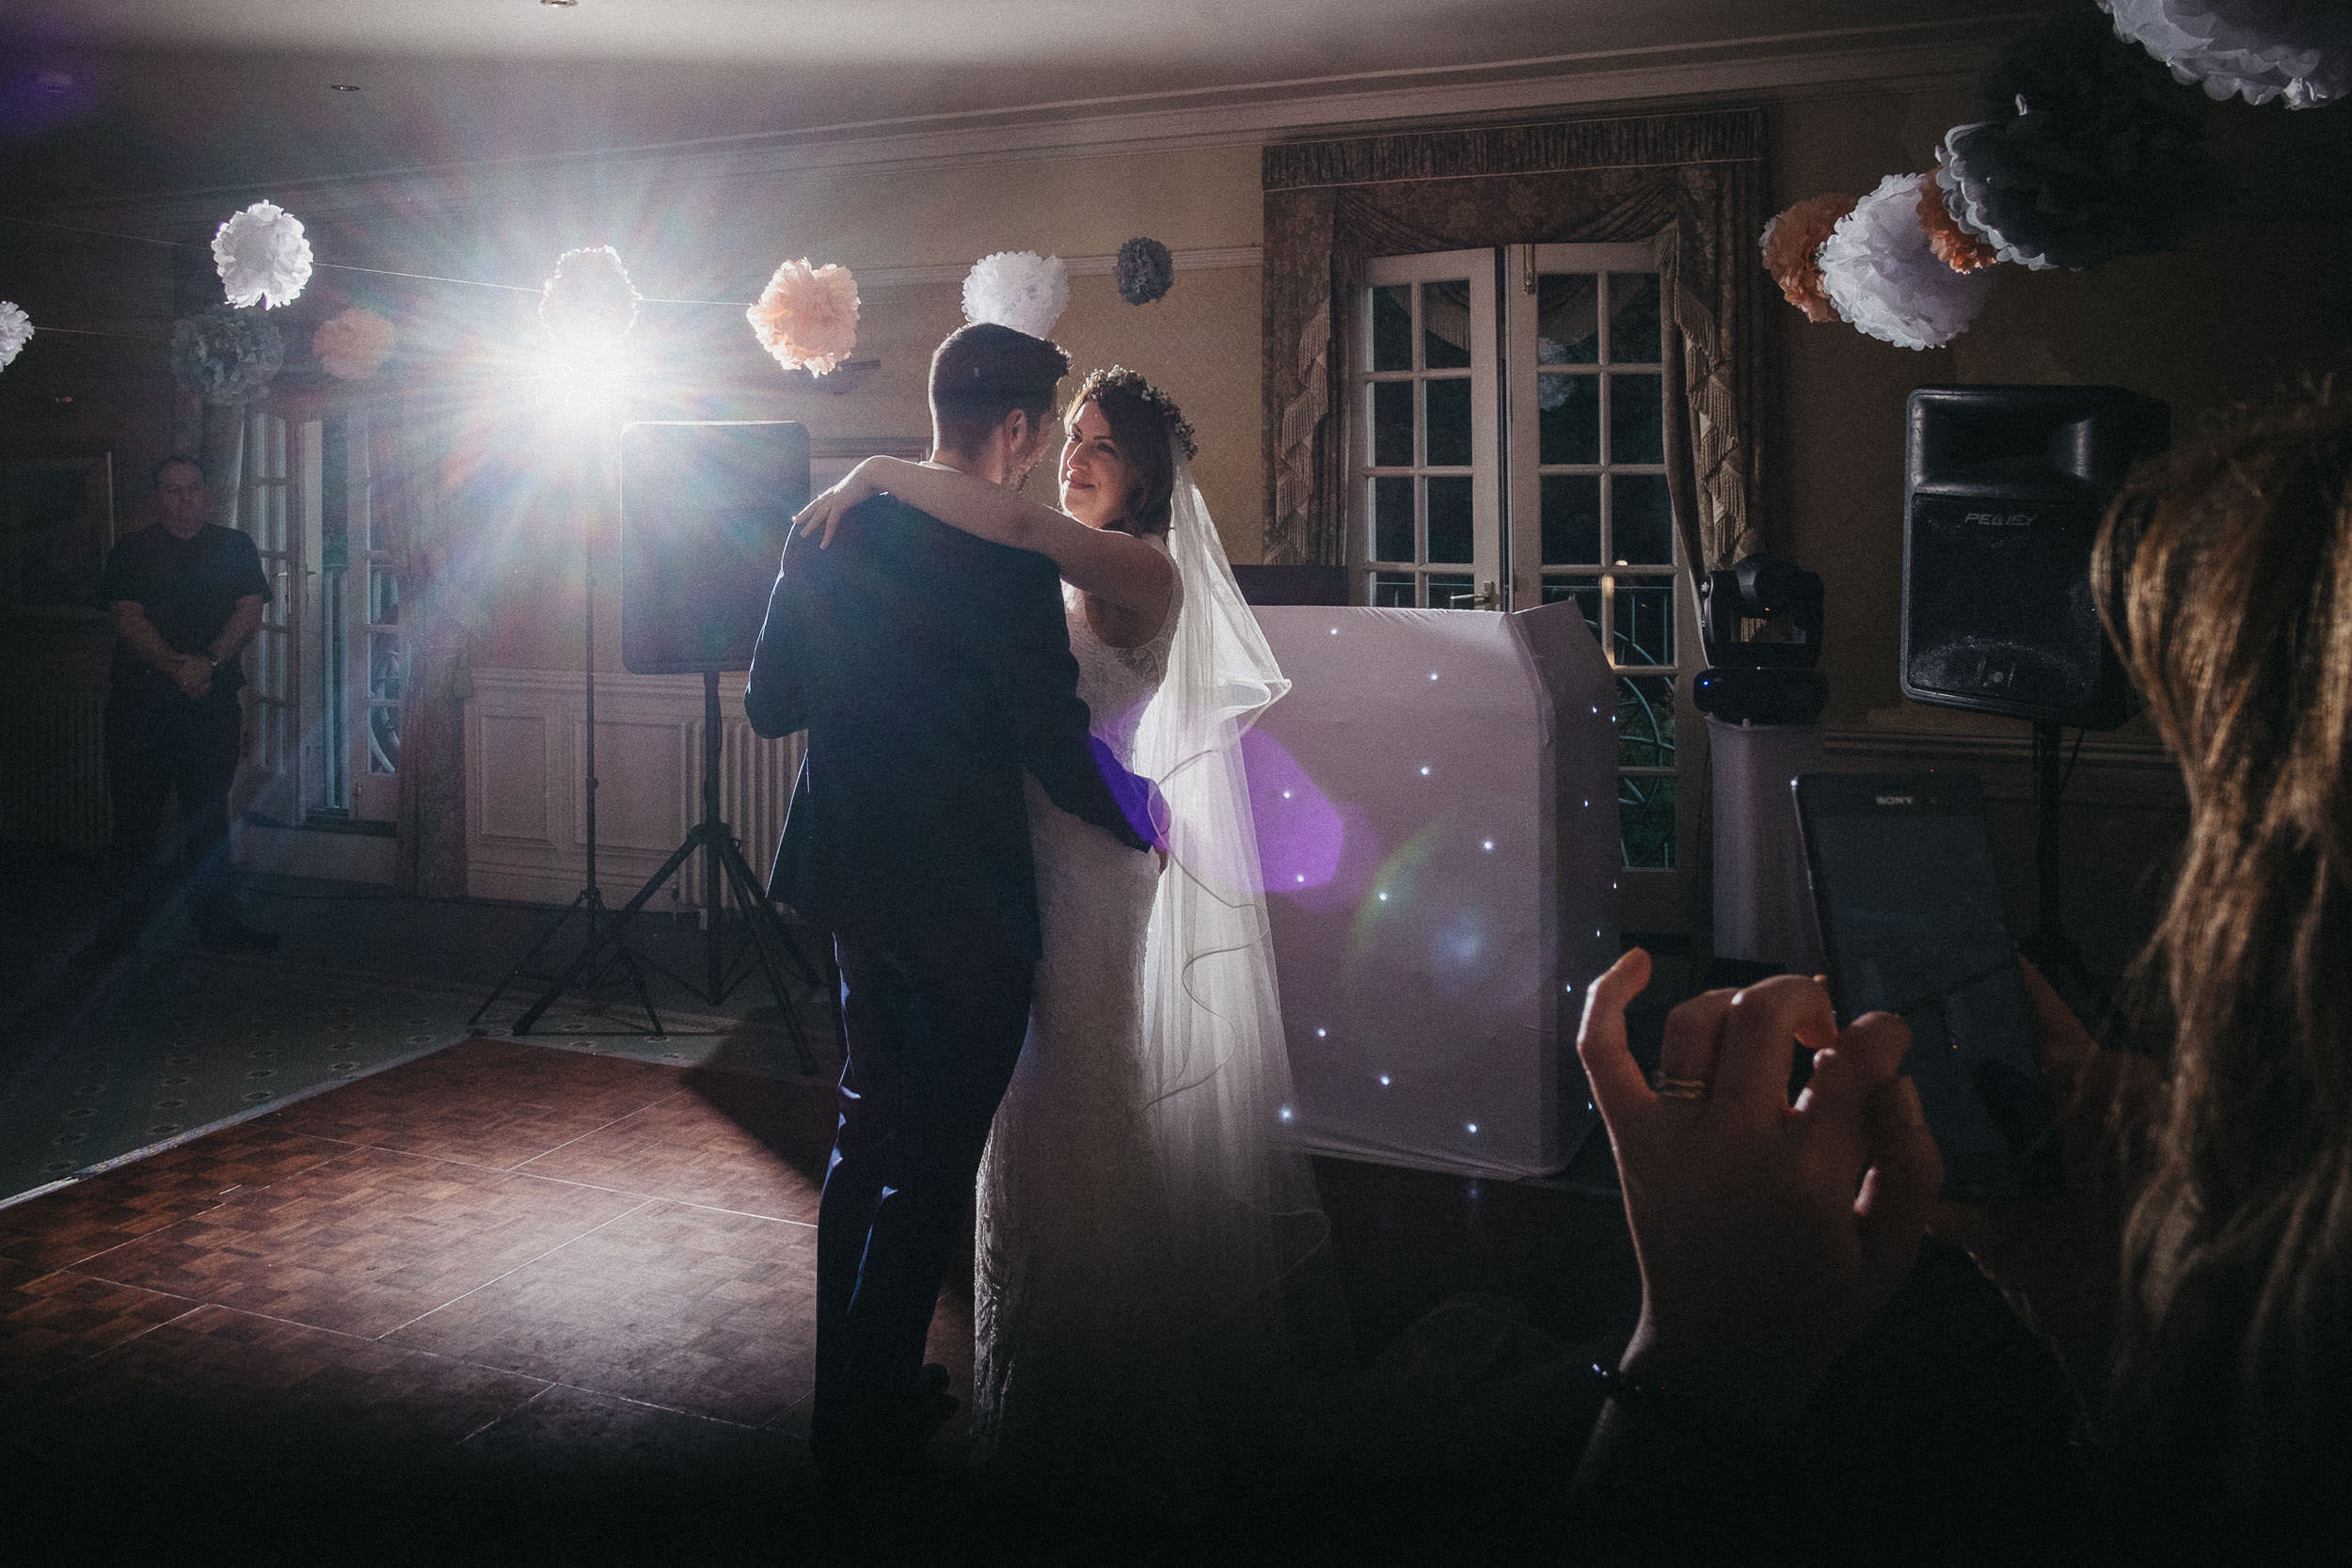 Bride looks at groom romantically during first dance